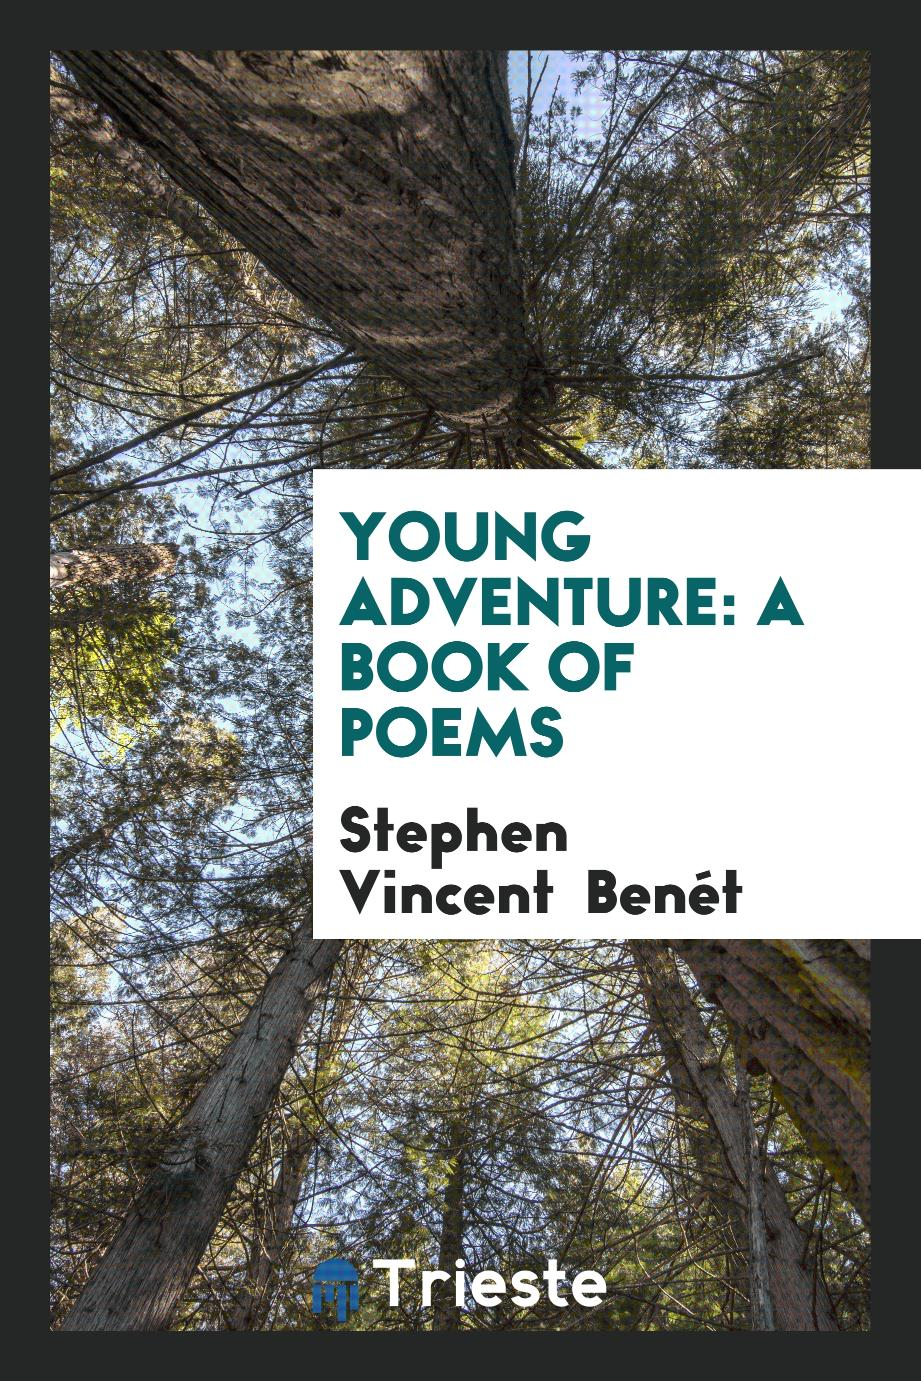 Young Adventure: A Book of Poems